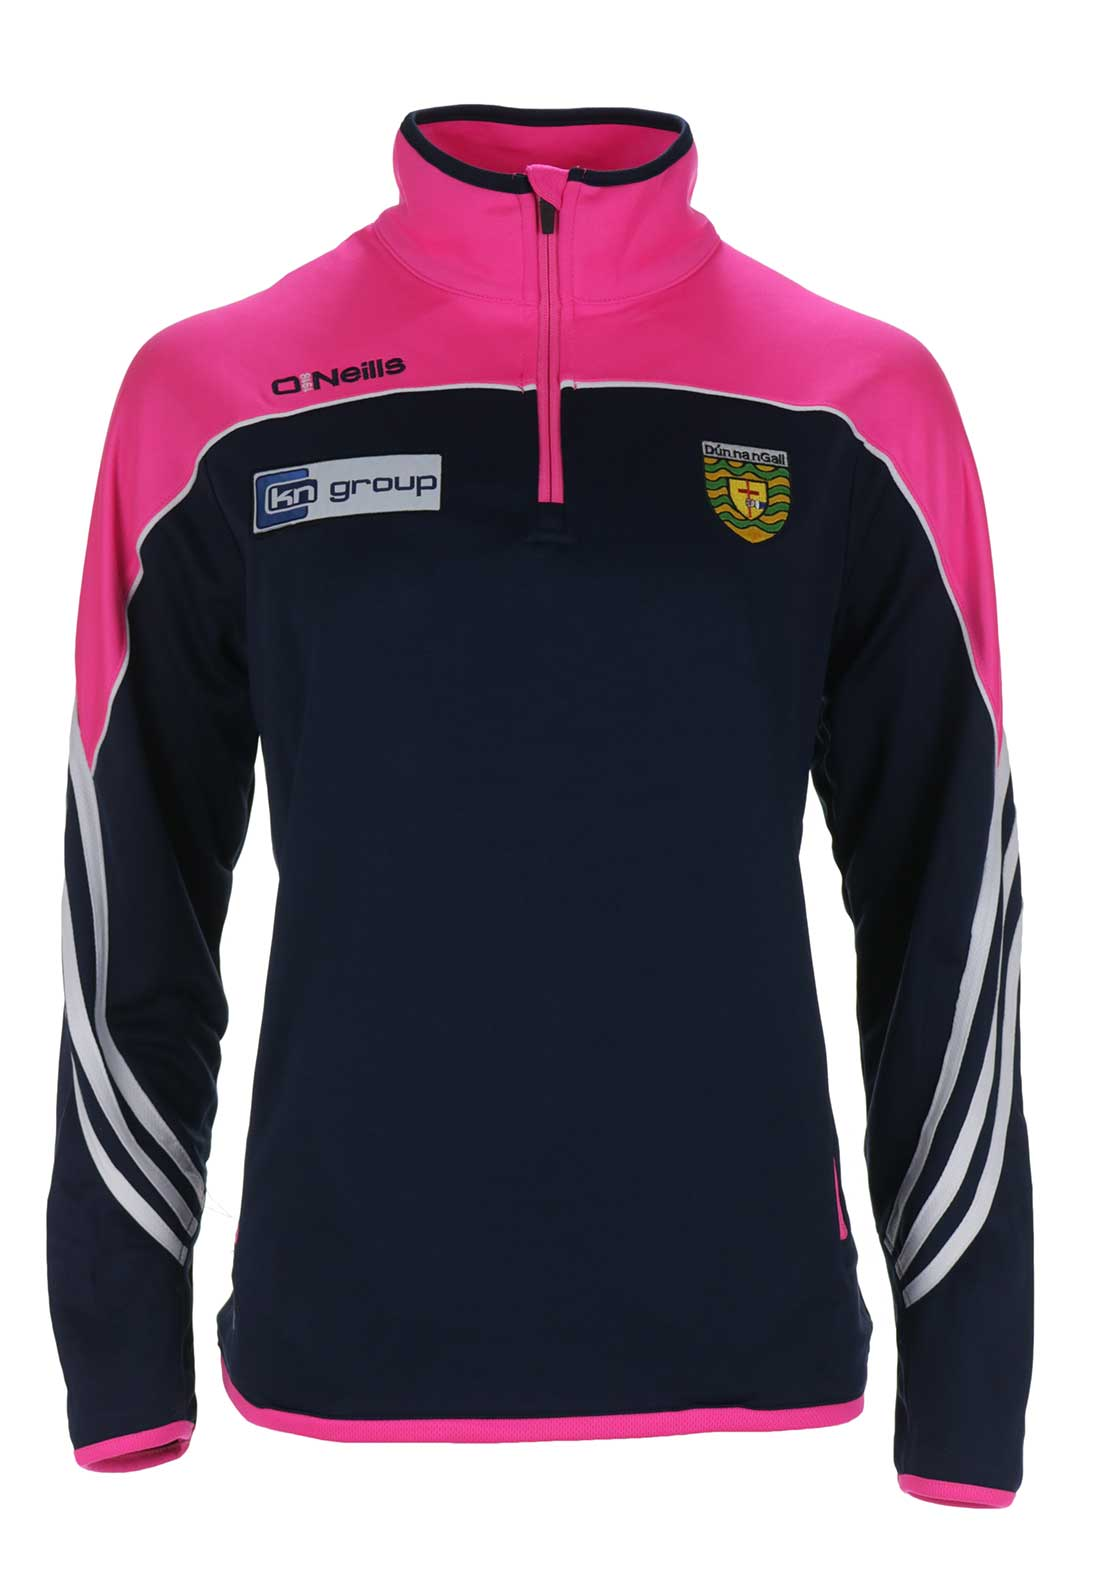 O'Neills Donegal GAA Womens Parnell Long Sleeve Training Top, Navy and Pink